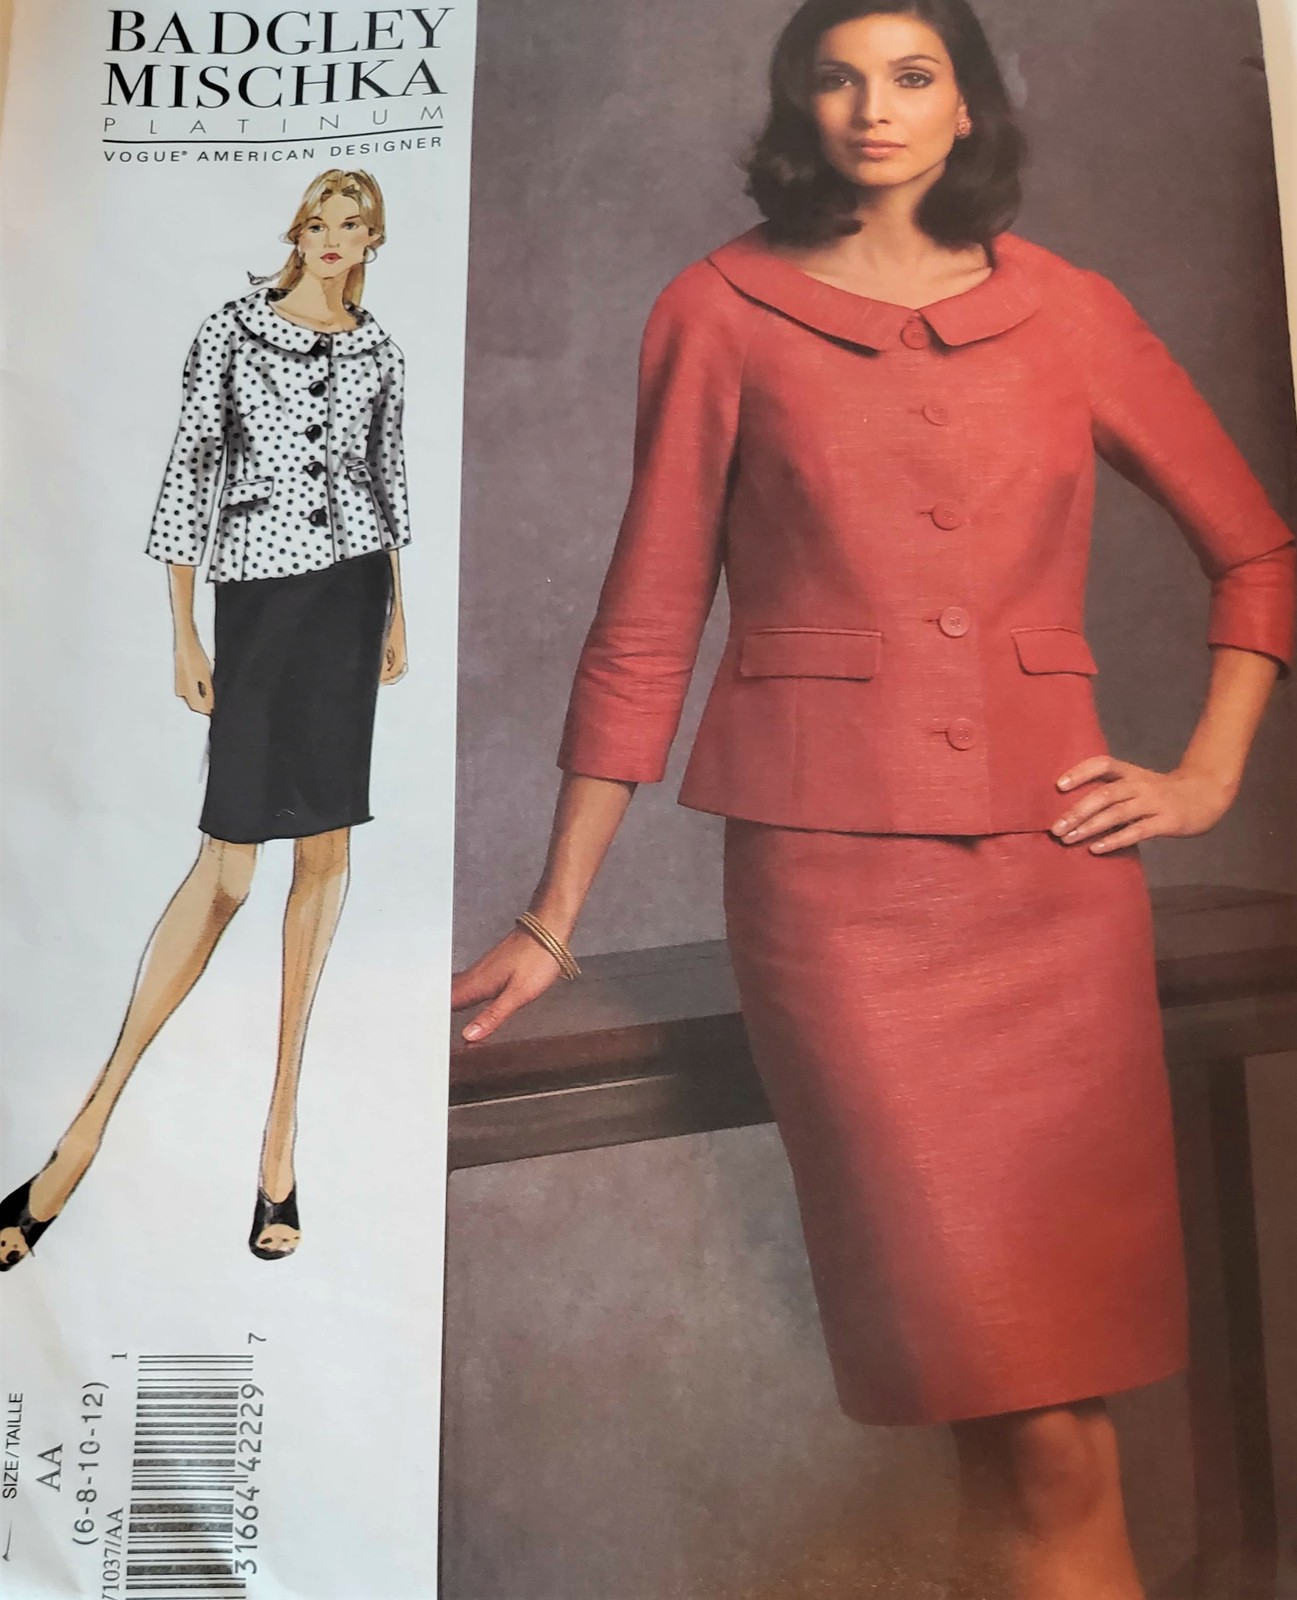 Primary image for Vogue Pattern 1037 Badgley Mischka, Jacket & Skirt Ensemble Sewing Pattern